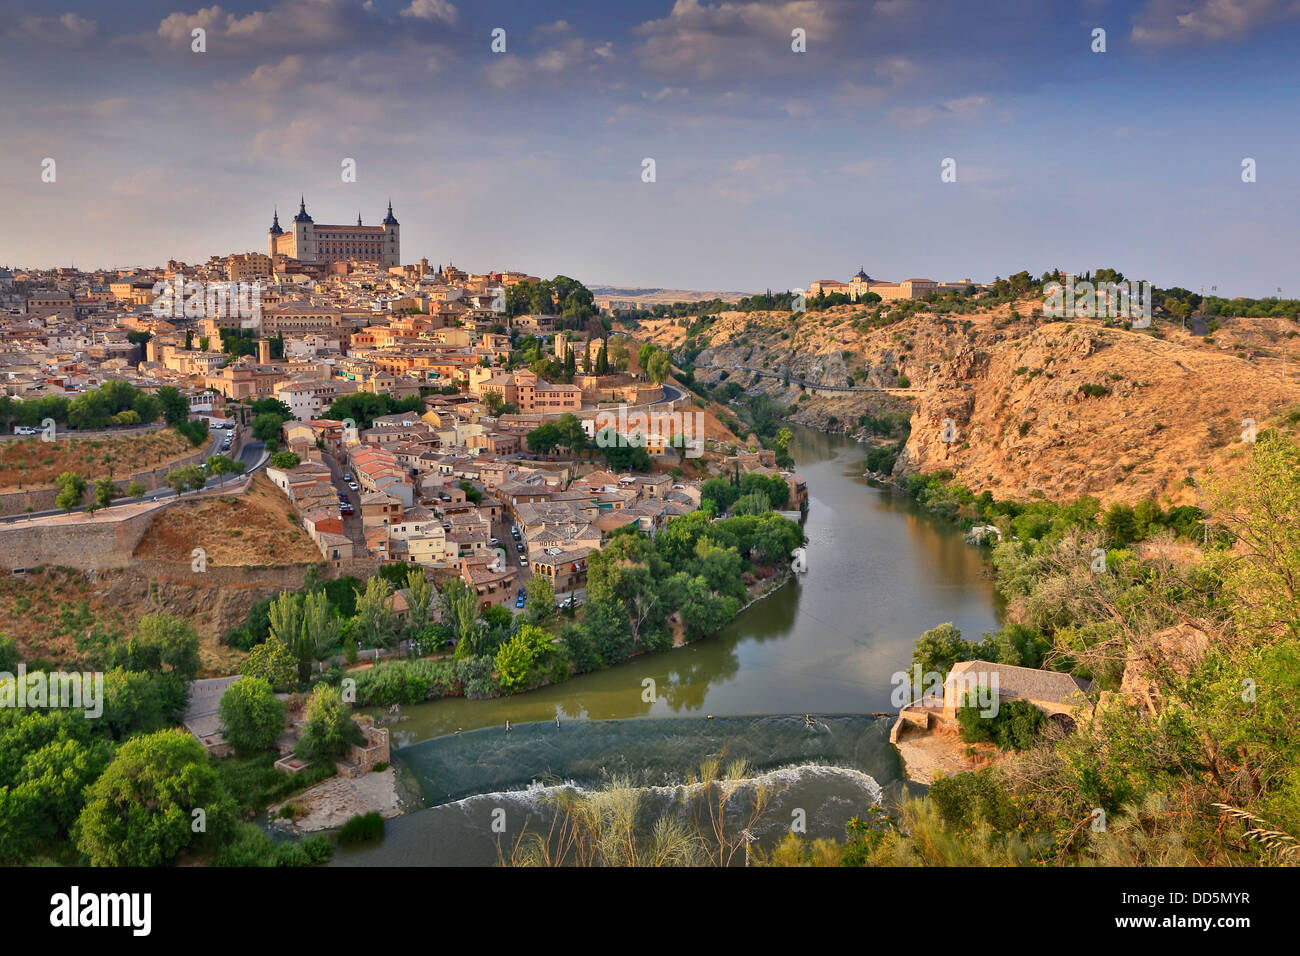 View of Toledo old city in Spain - Stock Image